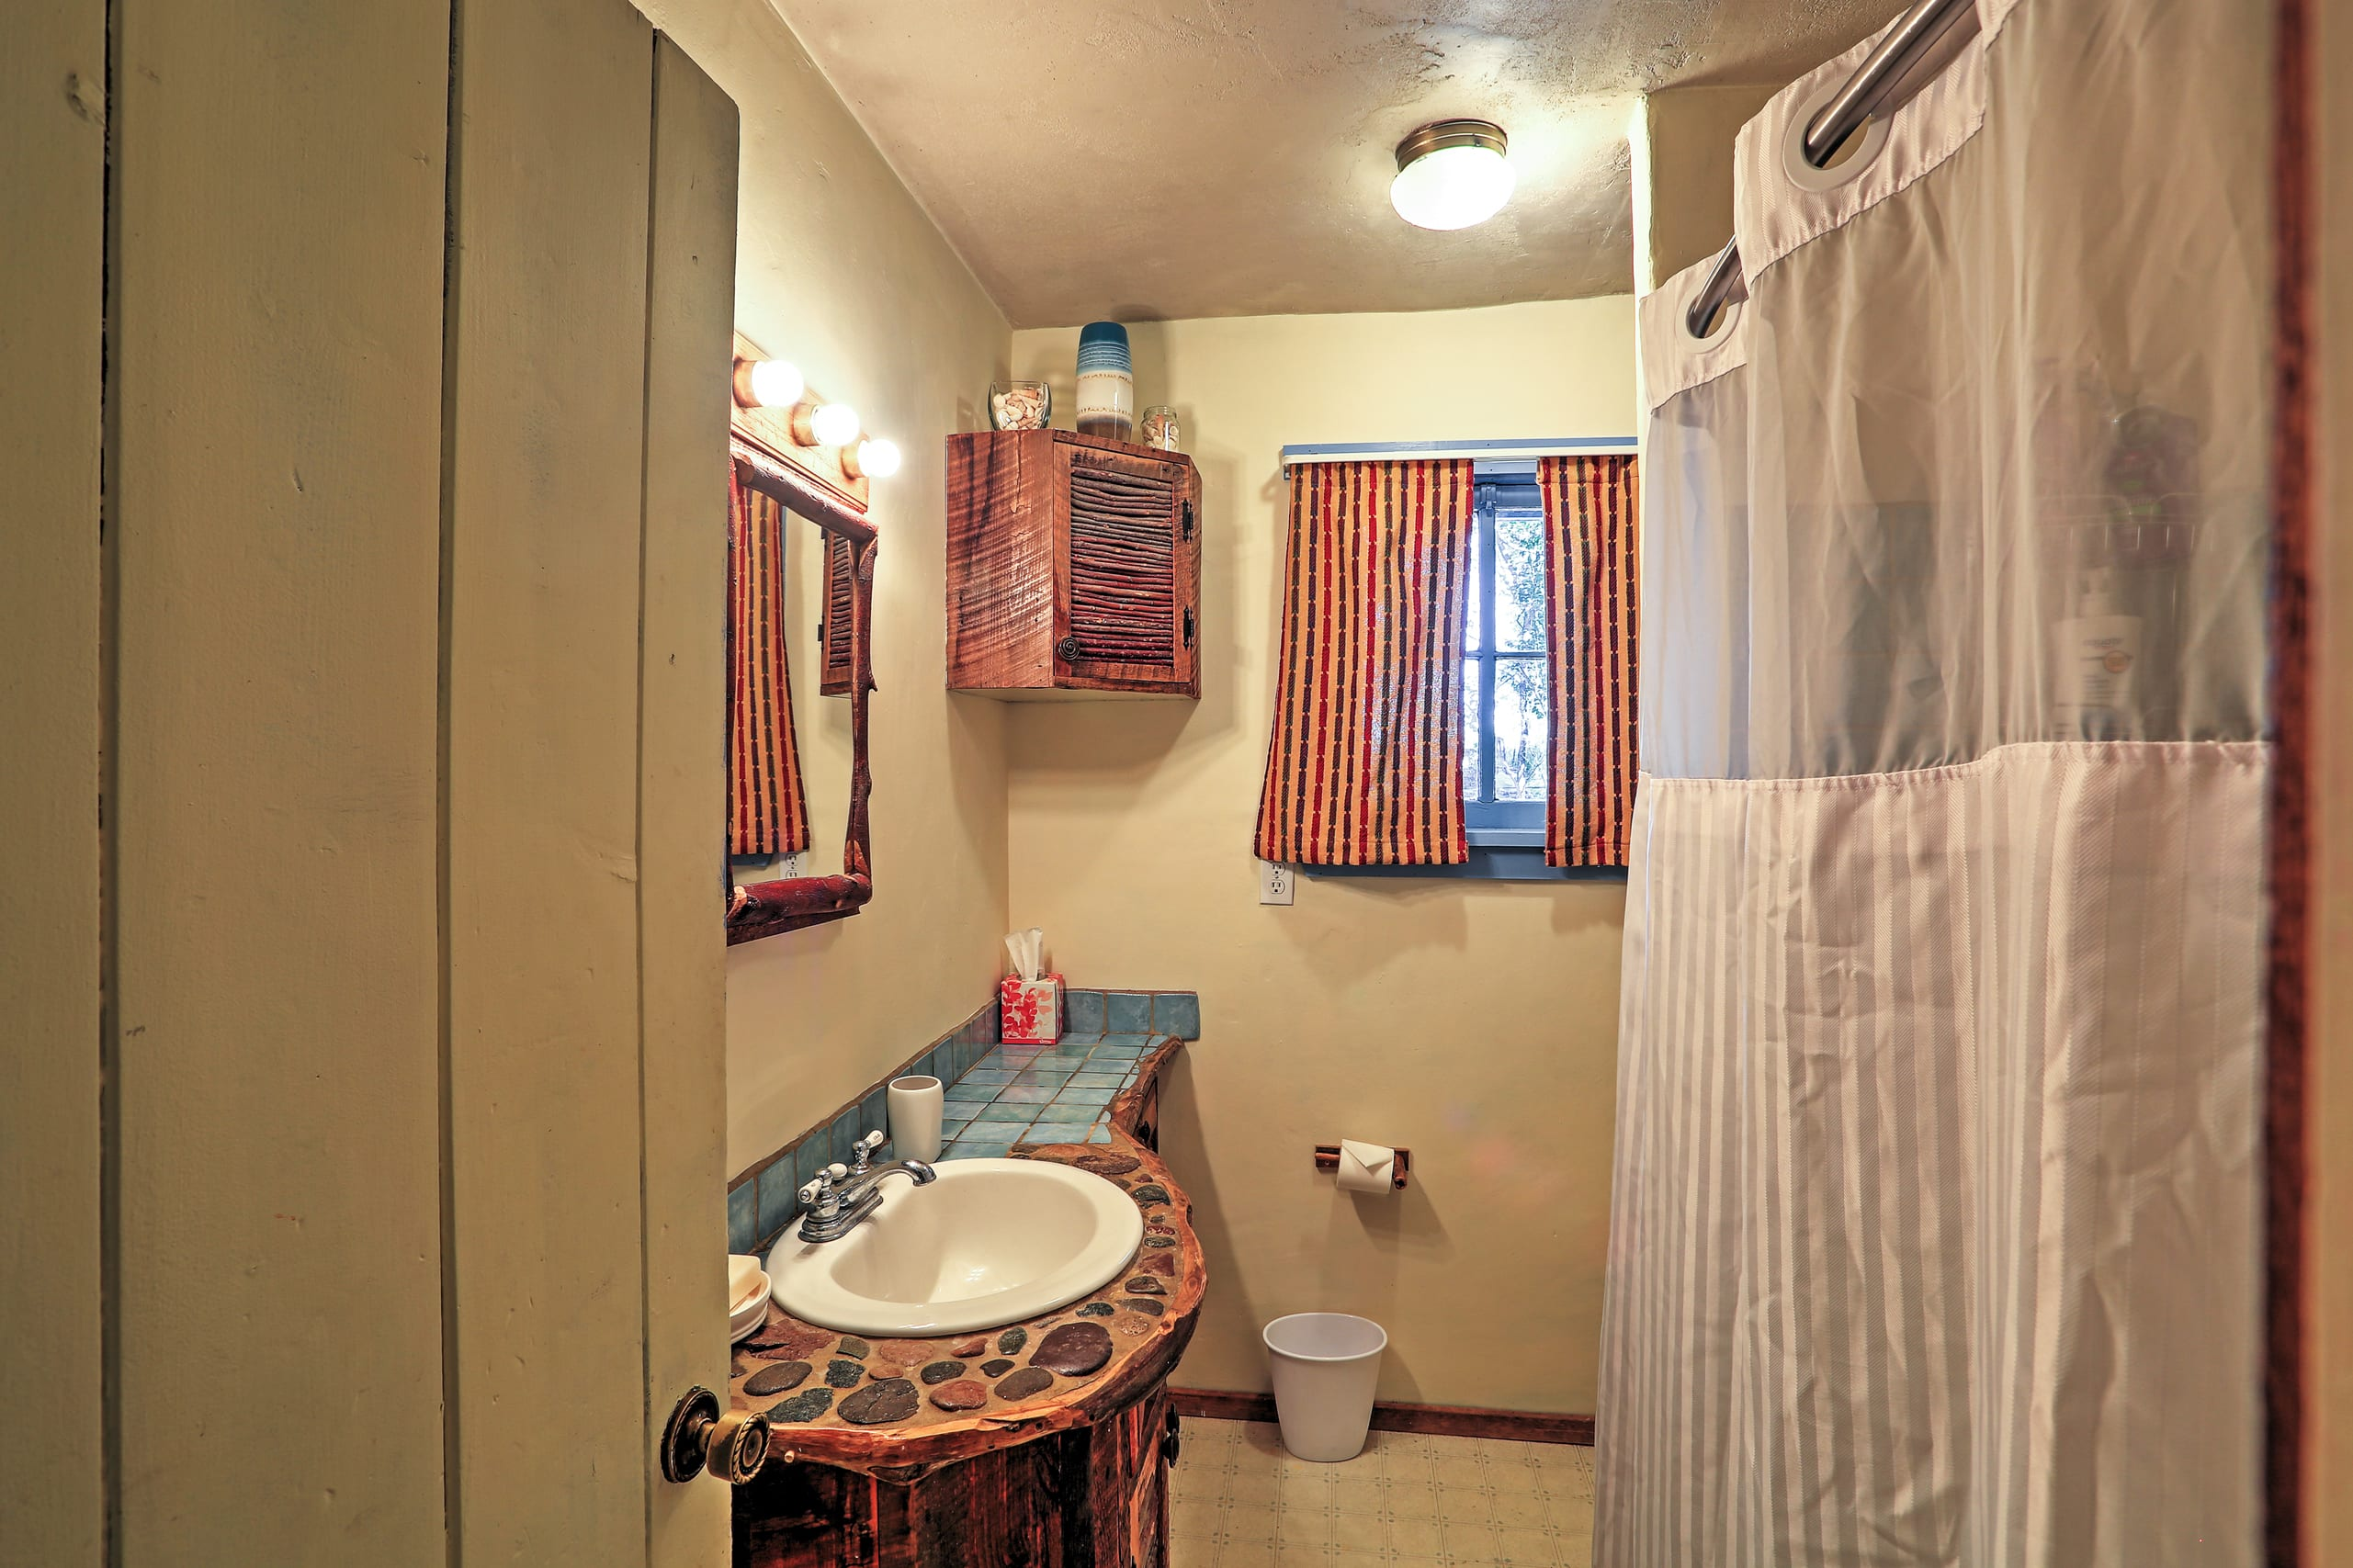 Rinse off in this full bathroom.